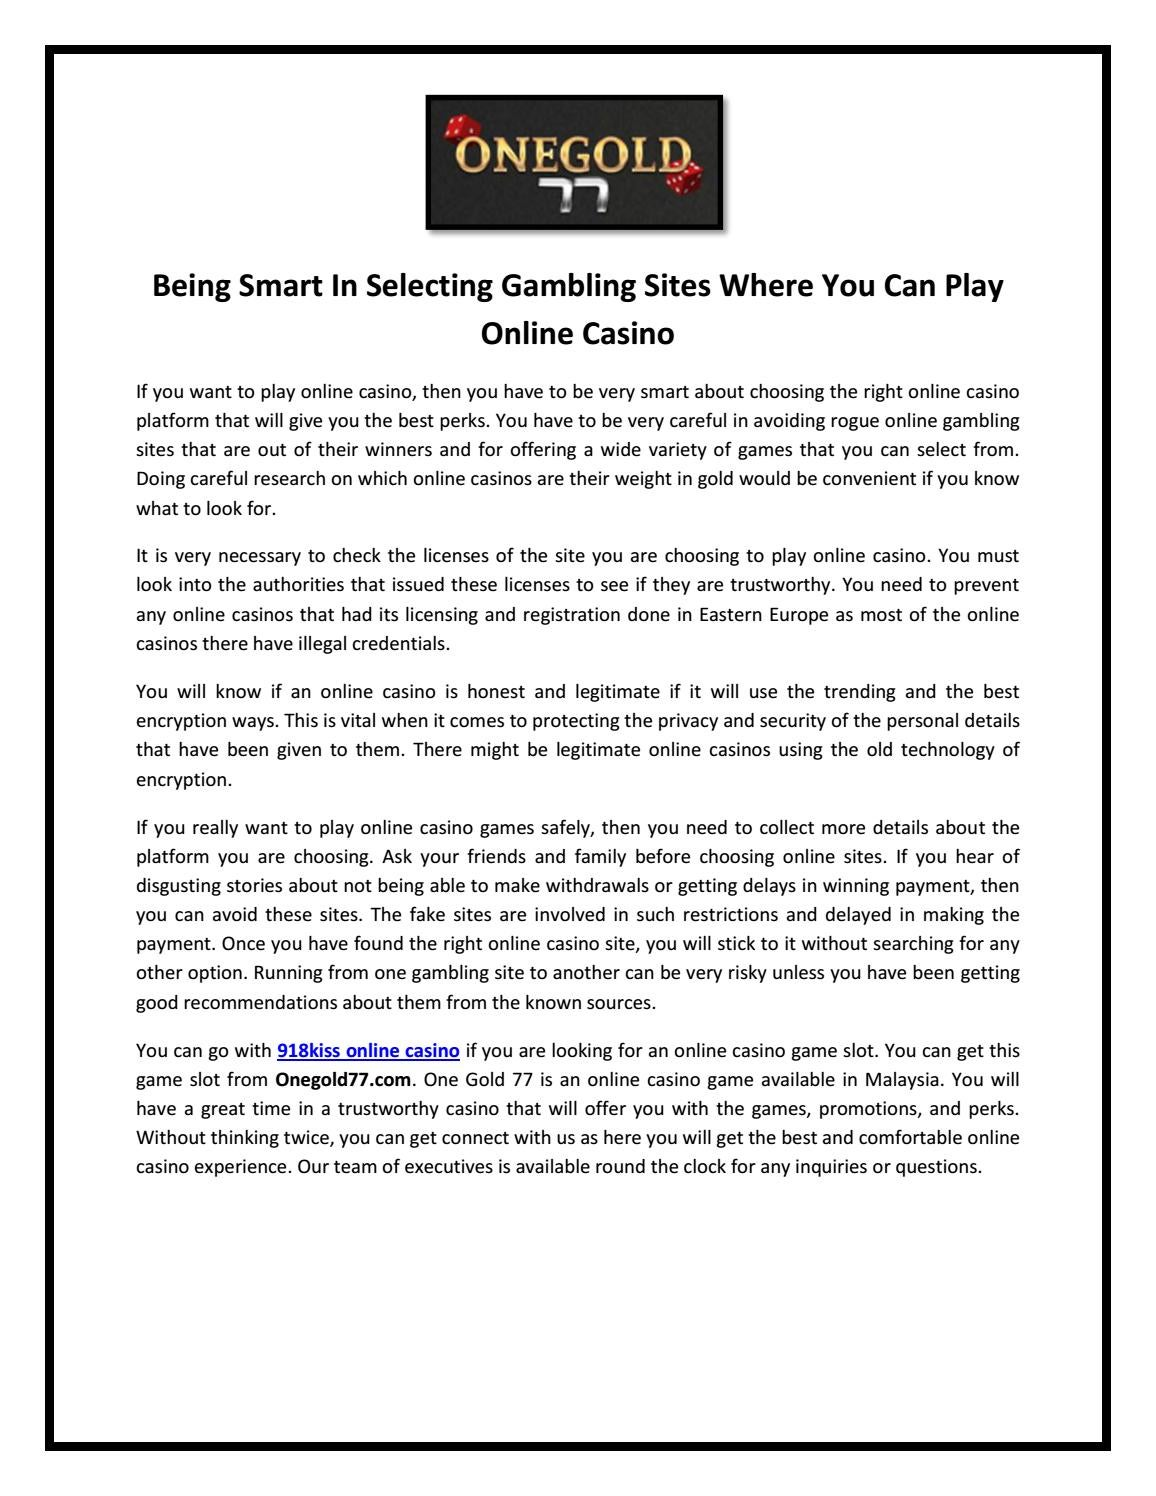 Being Smart In Selecting Gambling Sites Where You Can Play Online